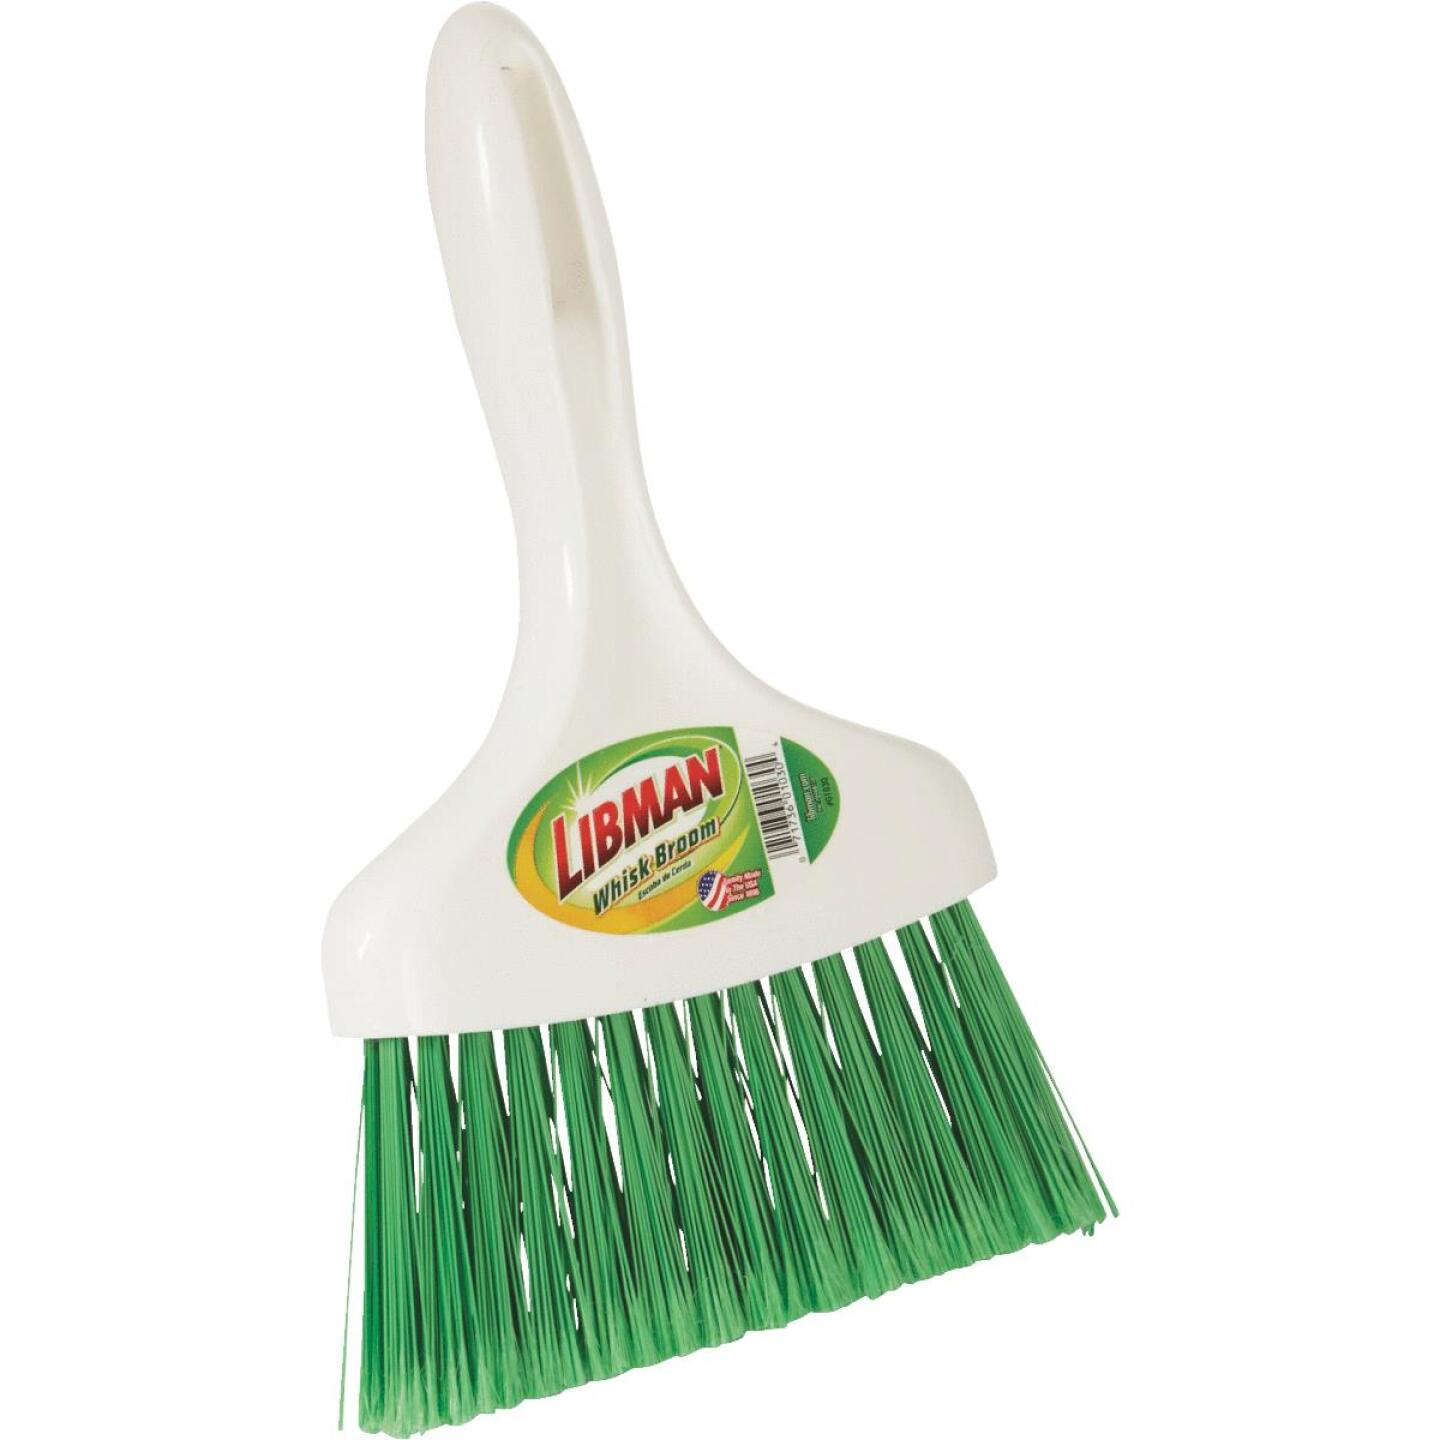 Libman 8 In. Poly Whisk Broom, Green Bristles Image 1